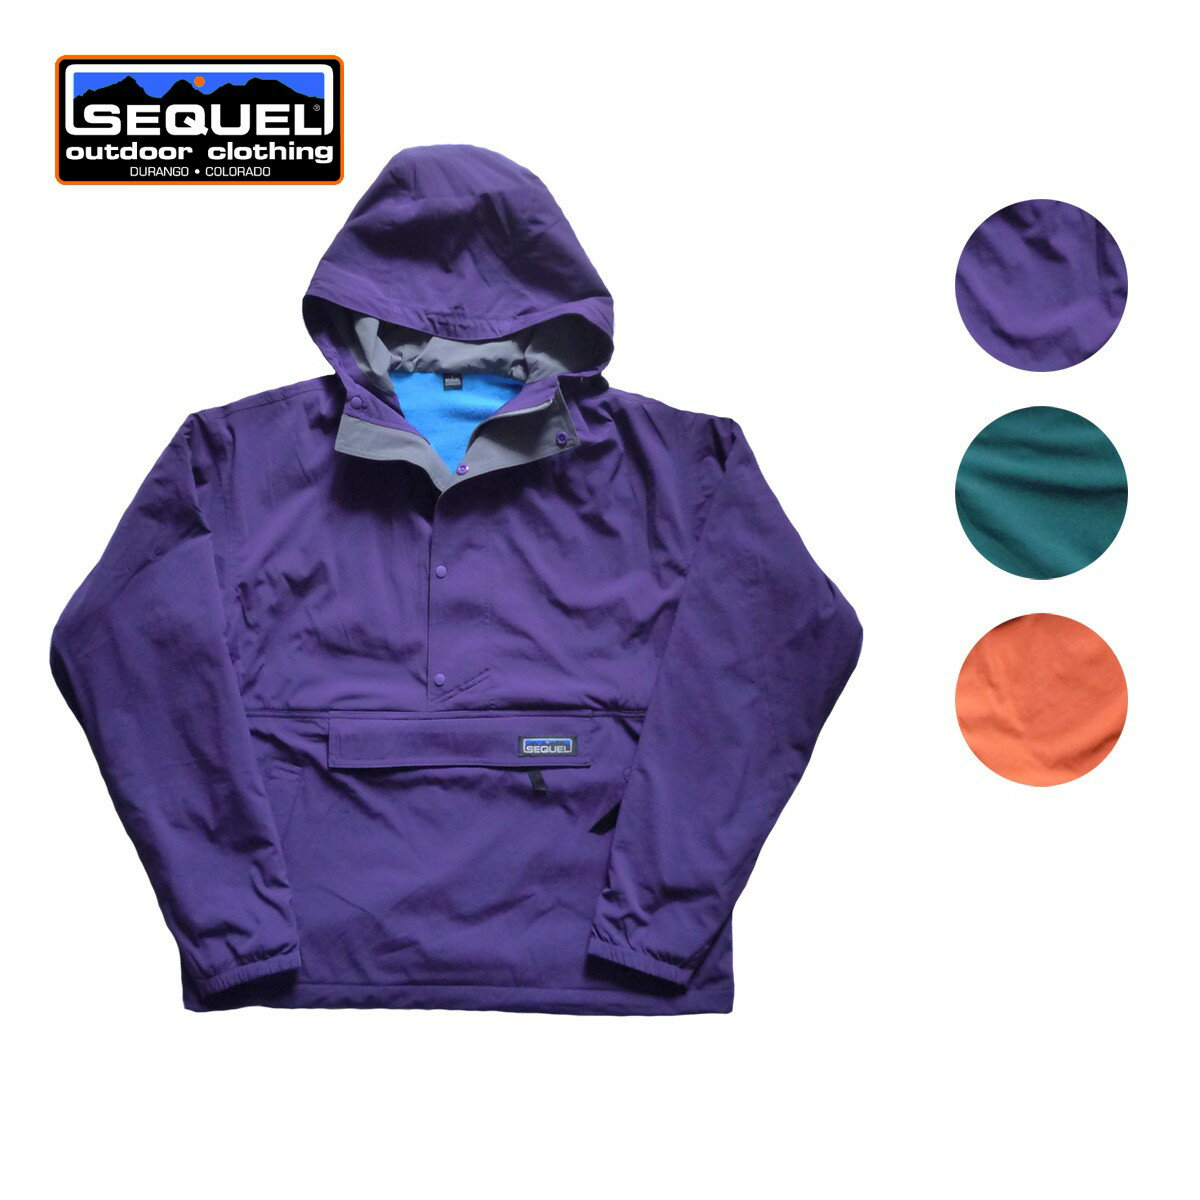 SEQUEL シークエル ANORAK FLEECE PARKA